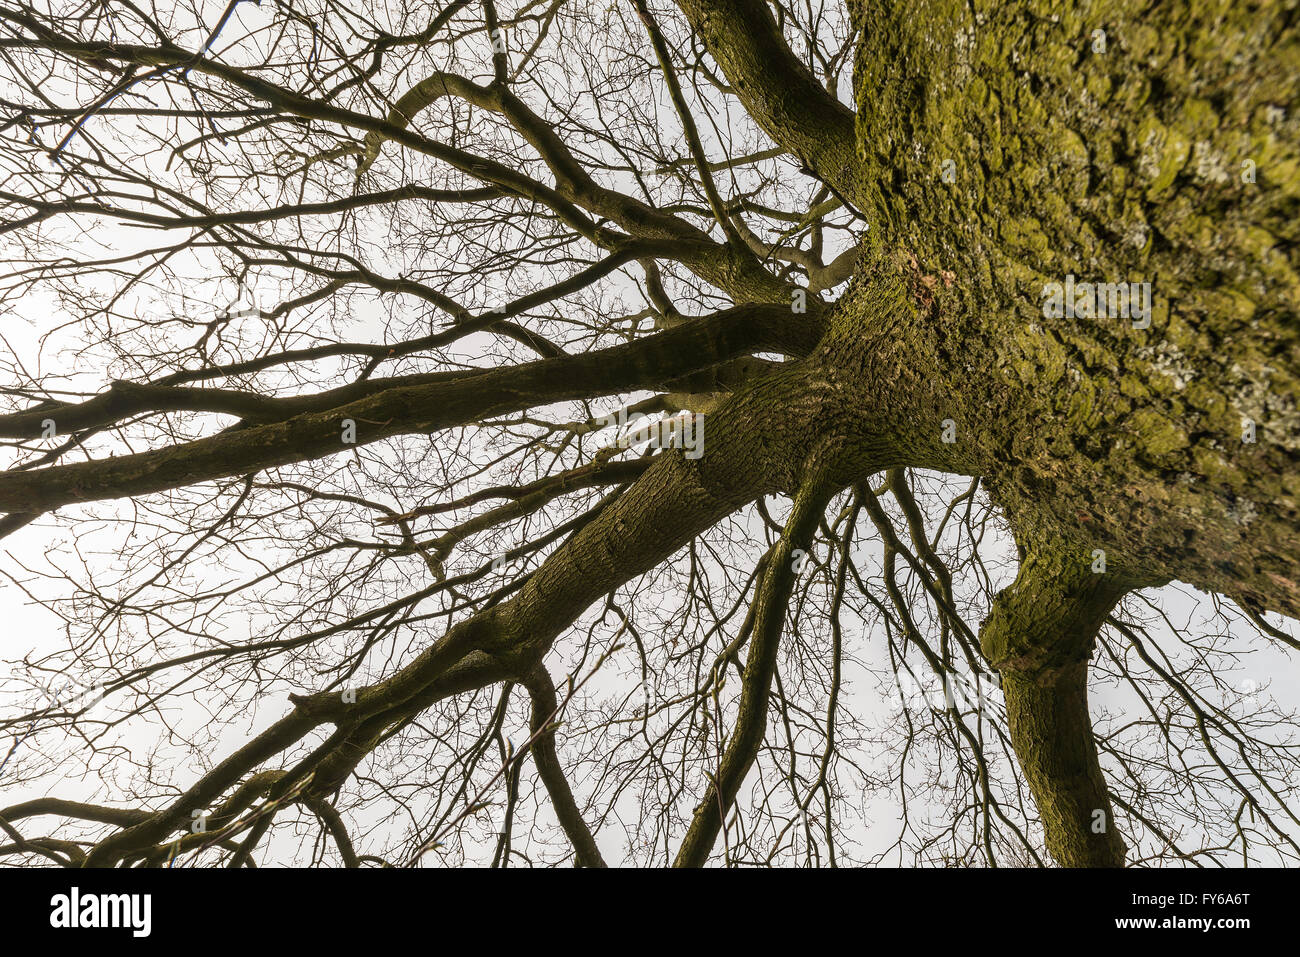 Tree outline with branches and sky in the background - Stock Image